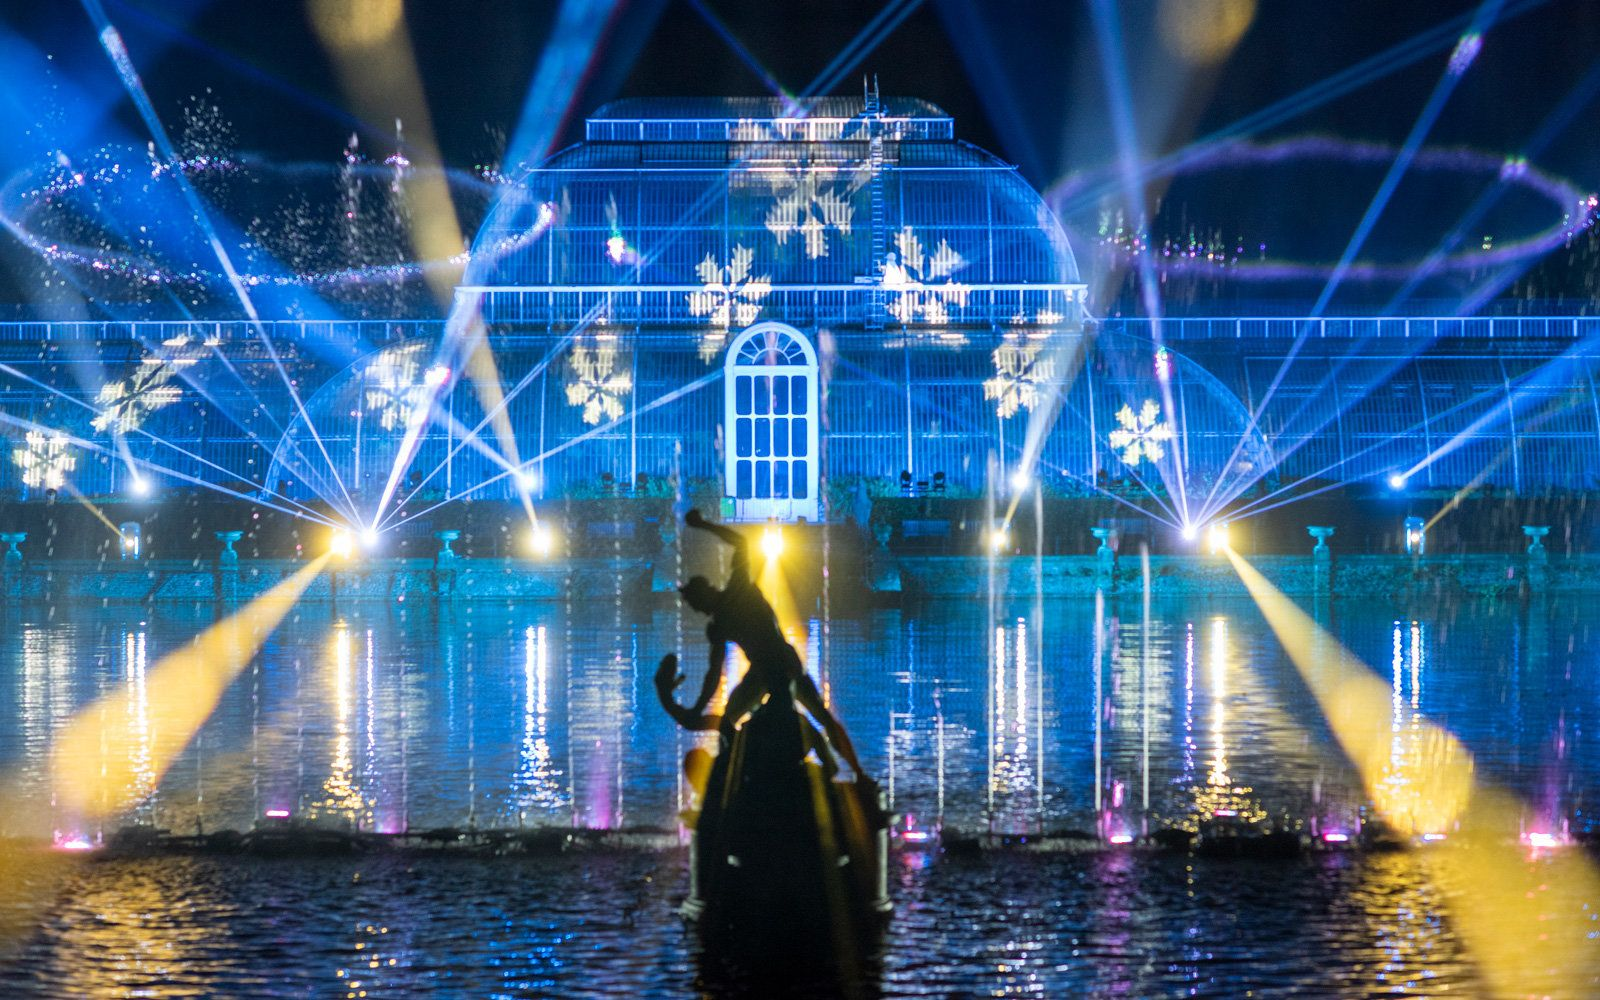 Christmas At Kew Gardens Is A Magical Winter Wonderland In 2020 Kew Gardens Kew Christmas Light Show